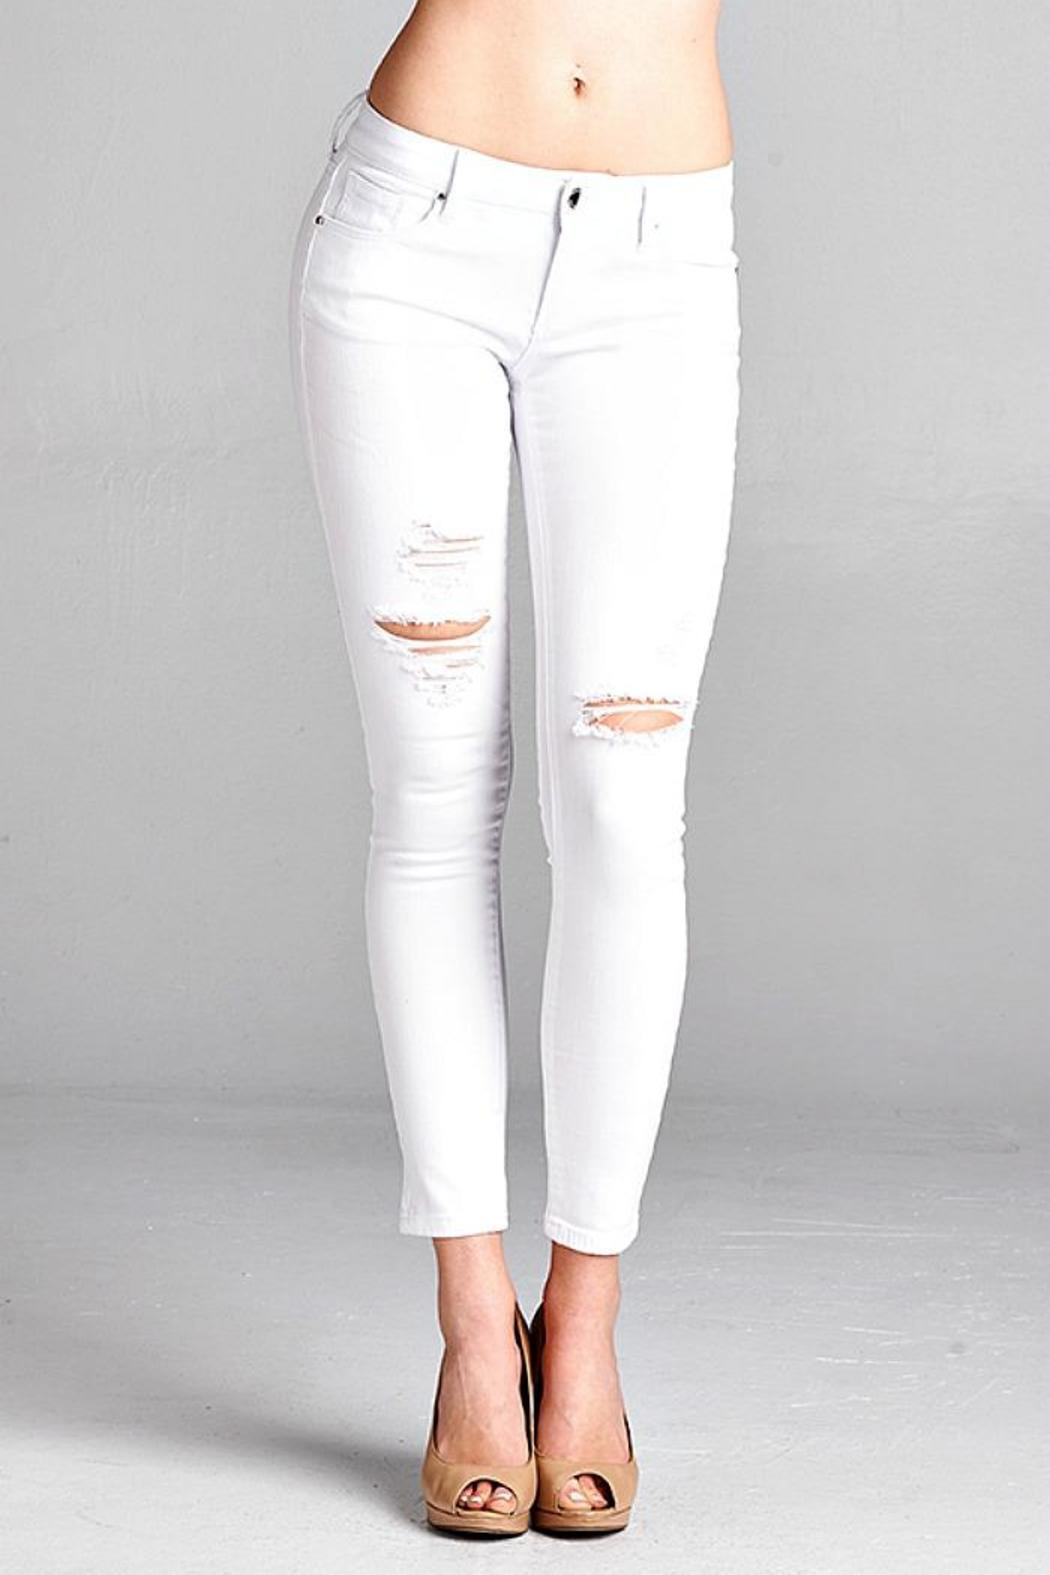 Simply Chic Distressed White Jeans from Seattle by SIMPLY CHIC ...